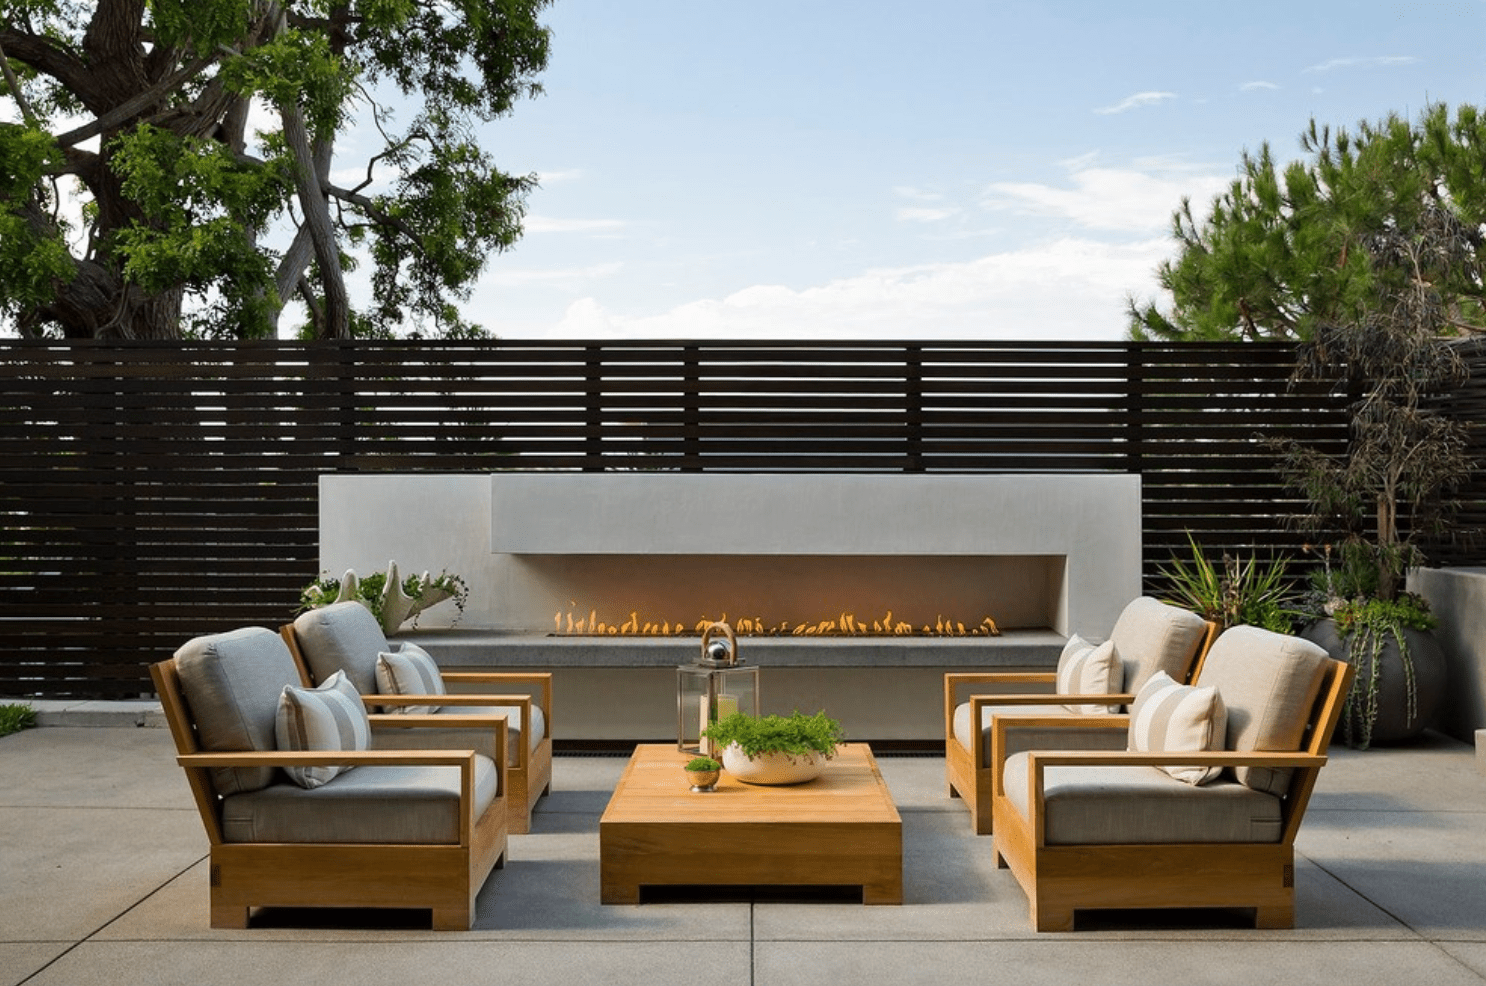 An extremely wide outdoor fireplace, situated near several outdoor lounge chairs